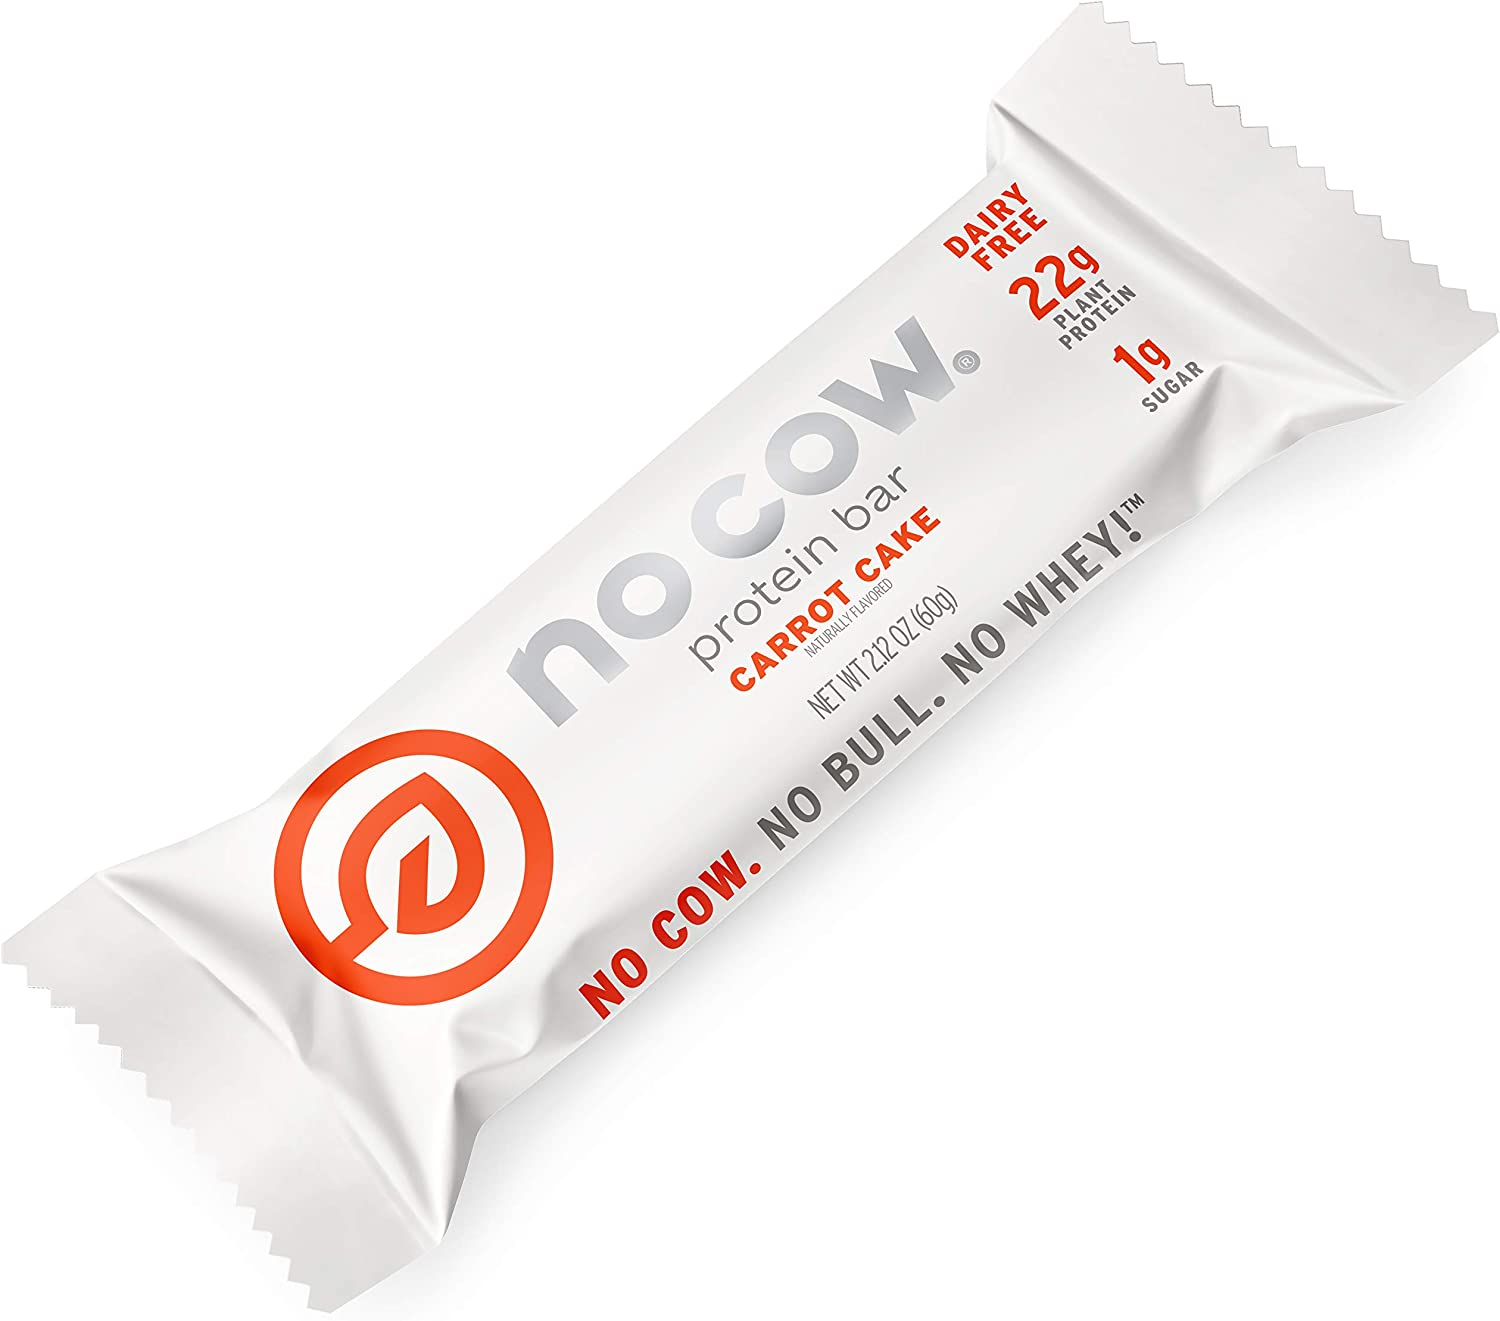 No Cow Protein Bar, Carrot Cake, 22g Plant Based Protein, Keto Friendly, Low Carb, Low Sugar, Dairy Free, Gluten Free, Vegan, High Fiber, Non-GMO, 12 Count